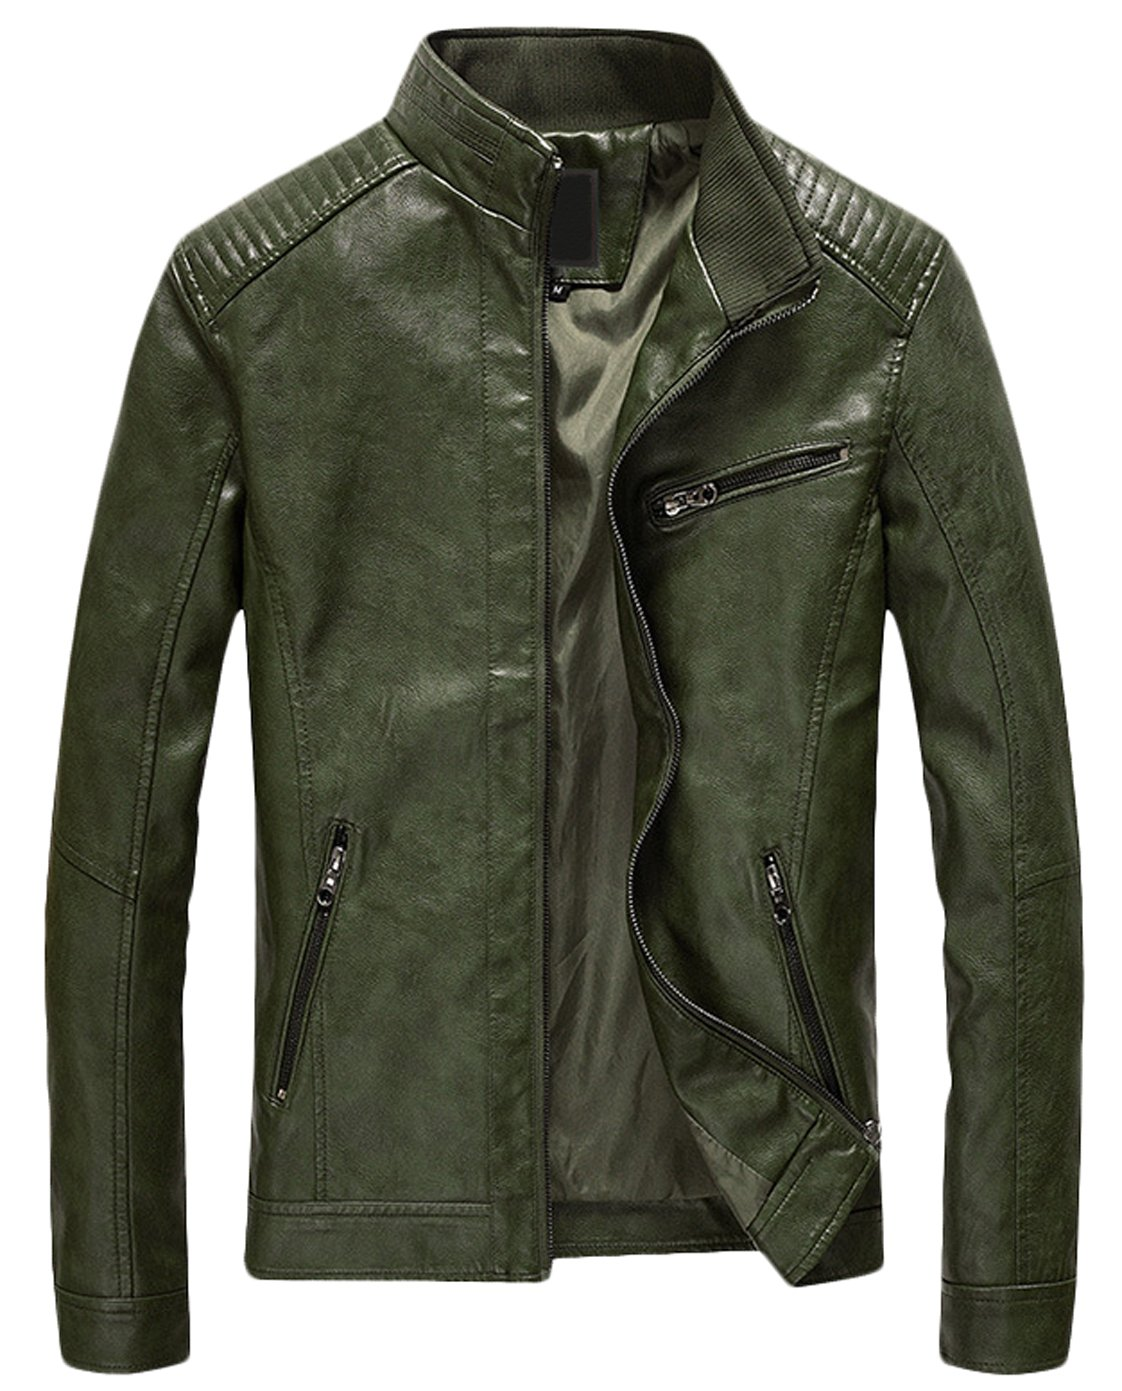 Youhan Men's Casual Zip up Slim Bomber Faux Leather Jacket (Medium, Army Green)